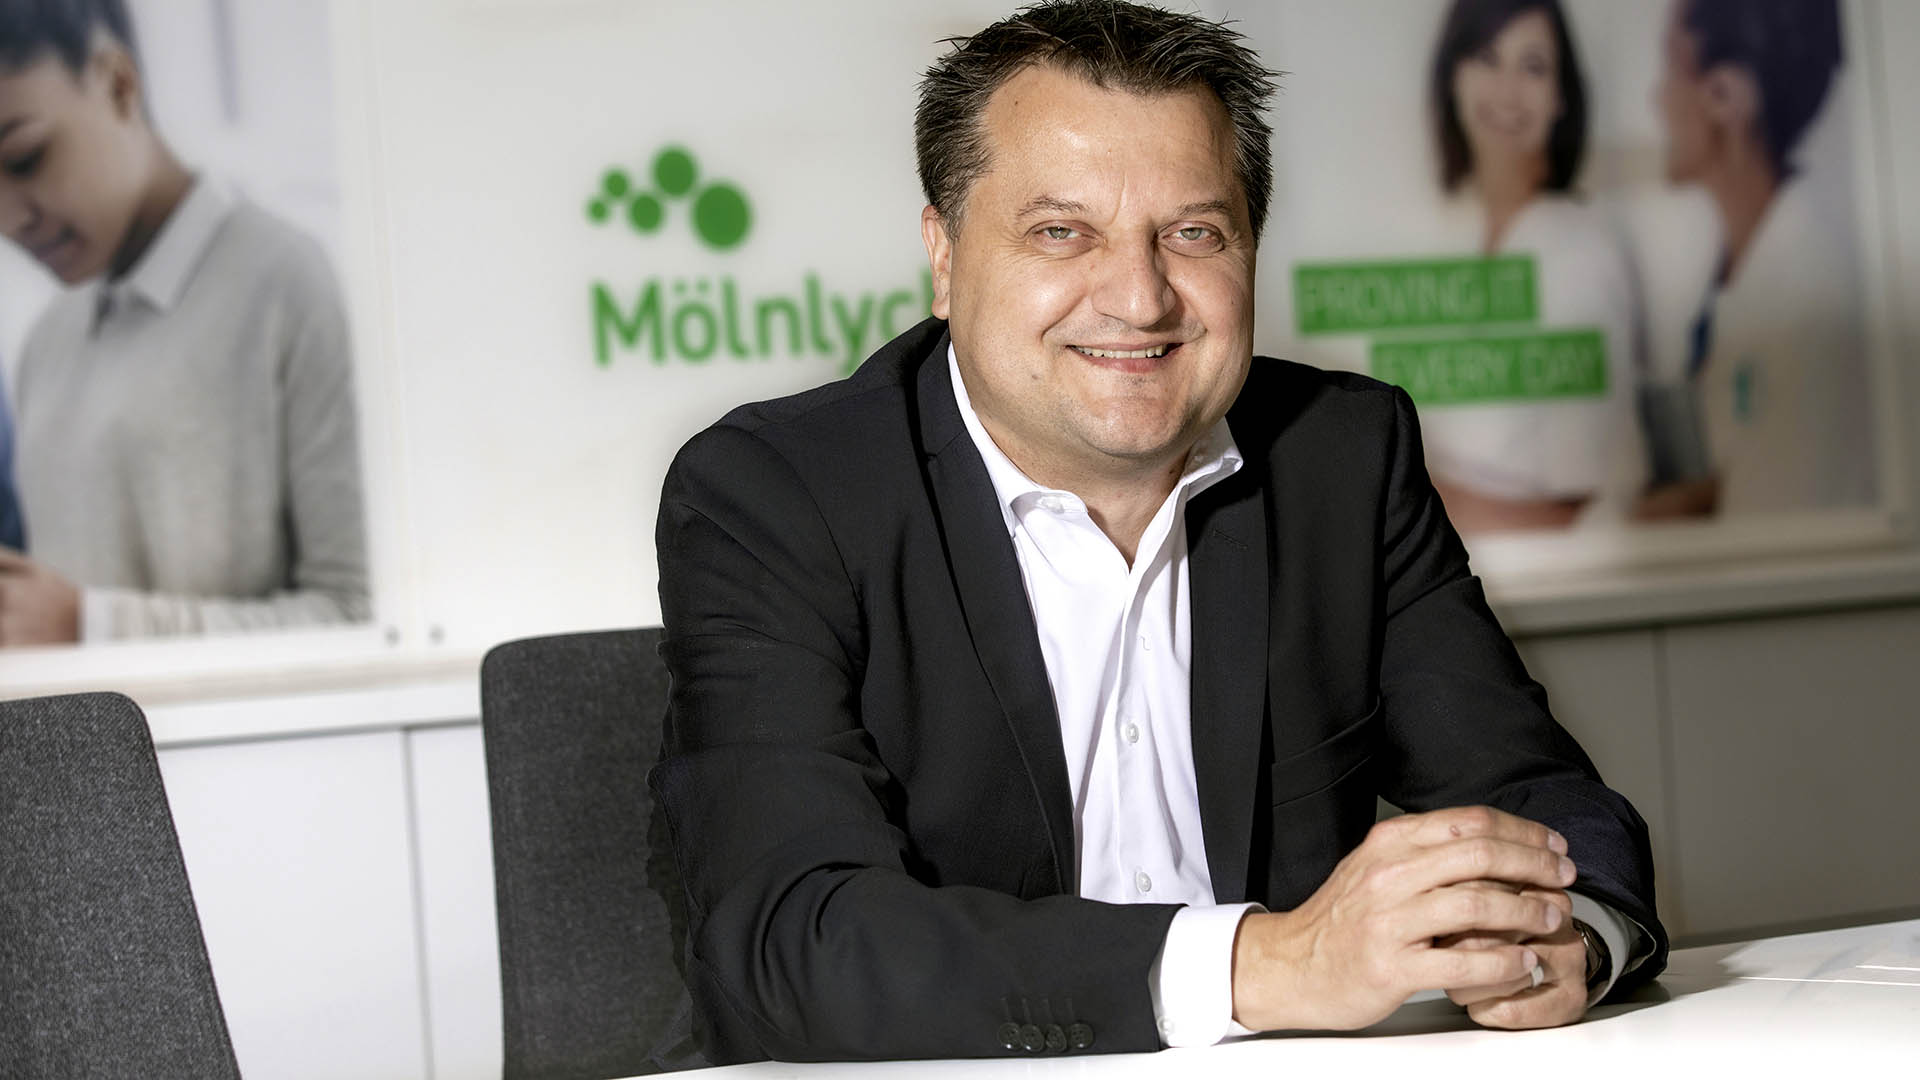 Zlatko Rither, ny CEO for Mölnlycke Health Care AB